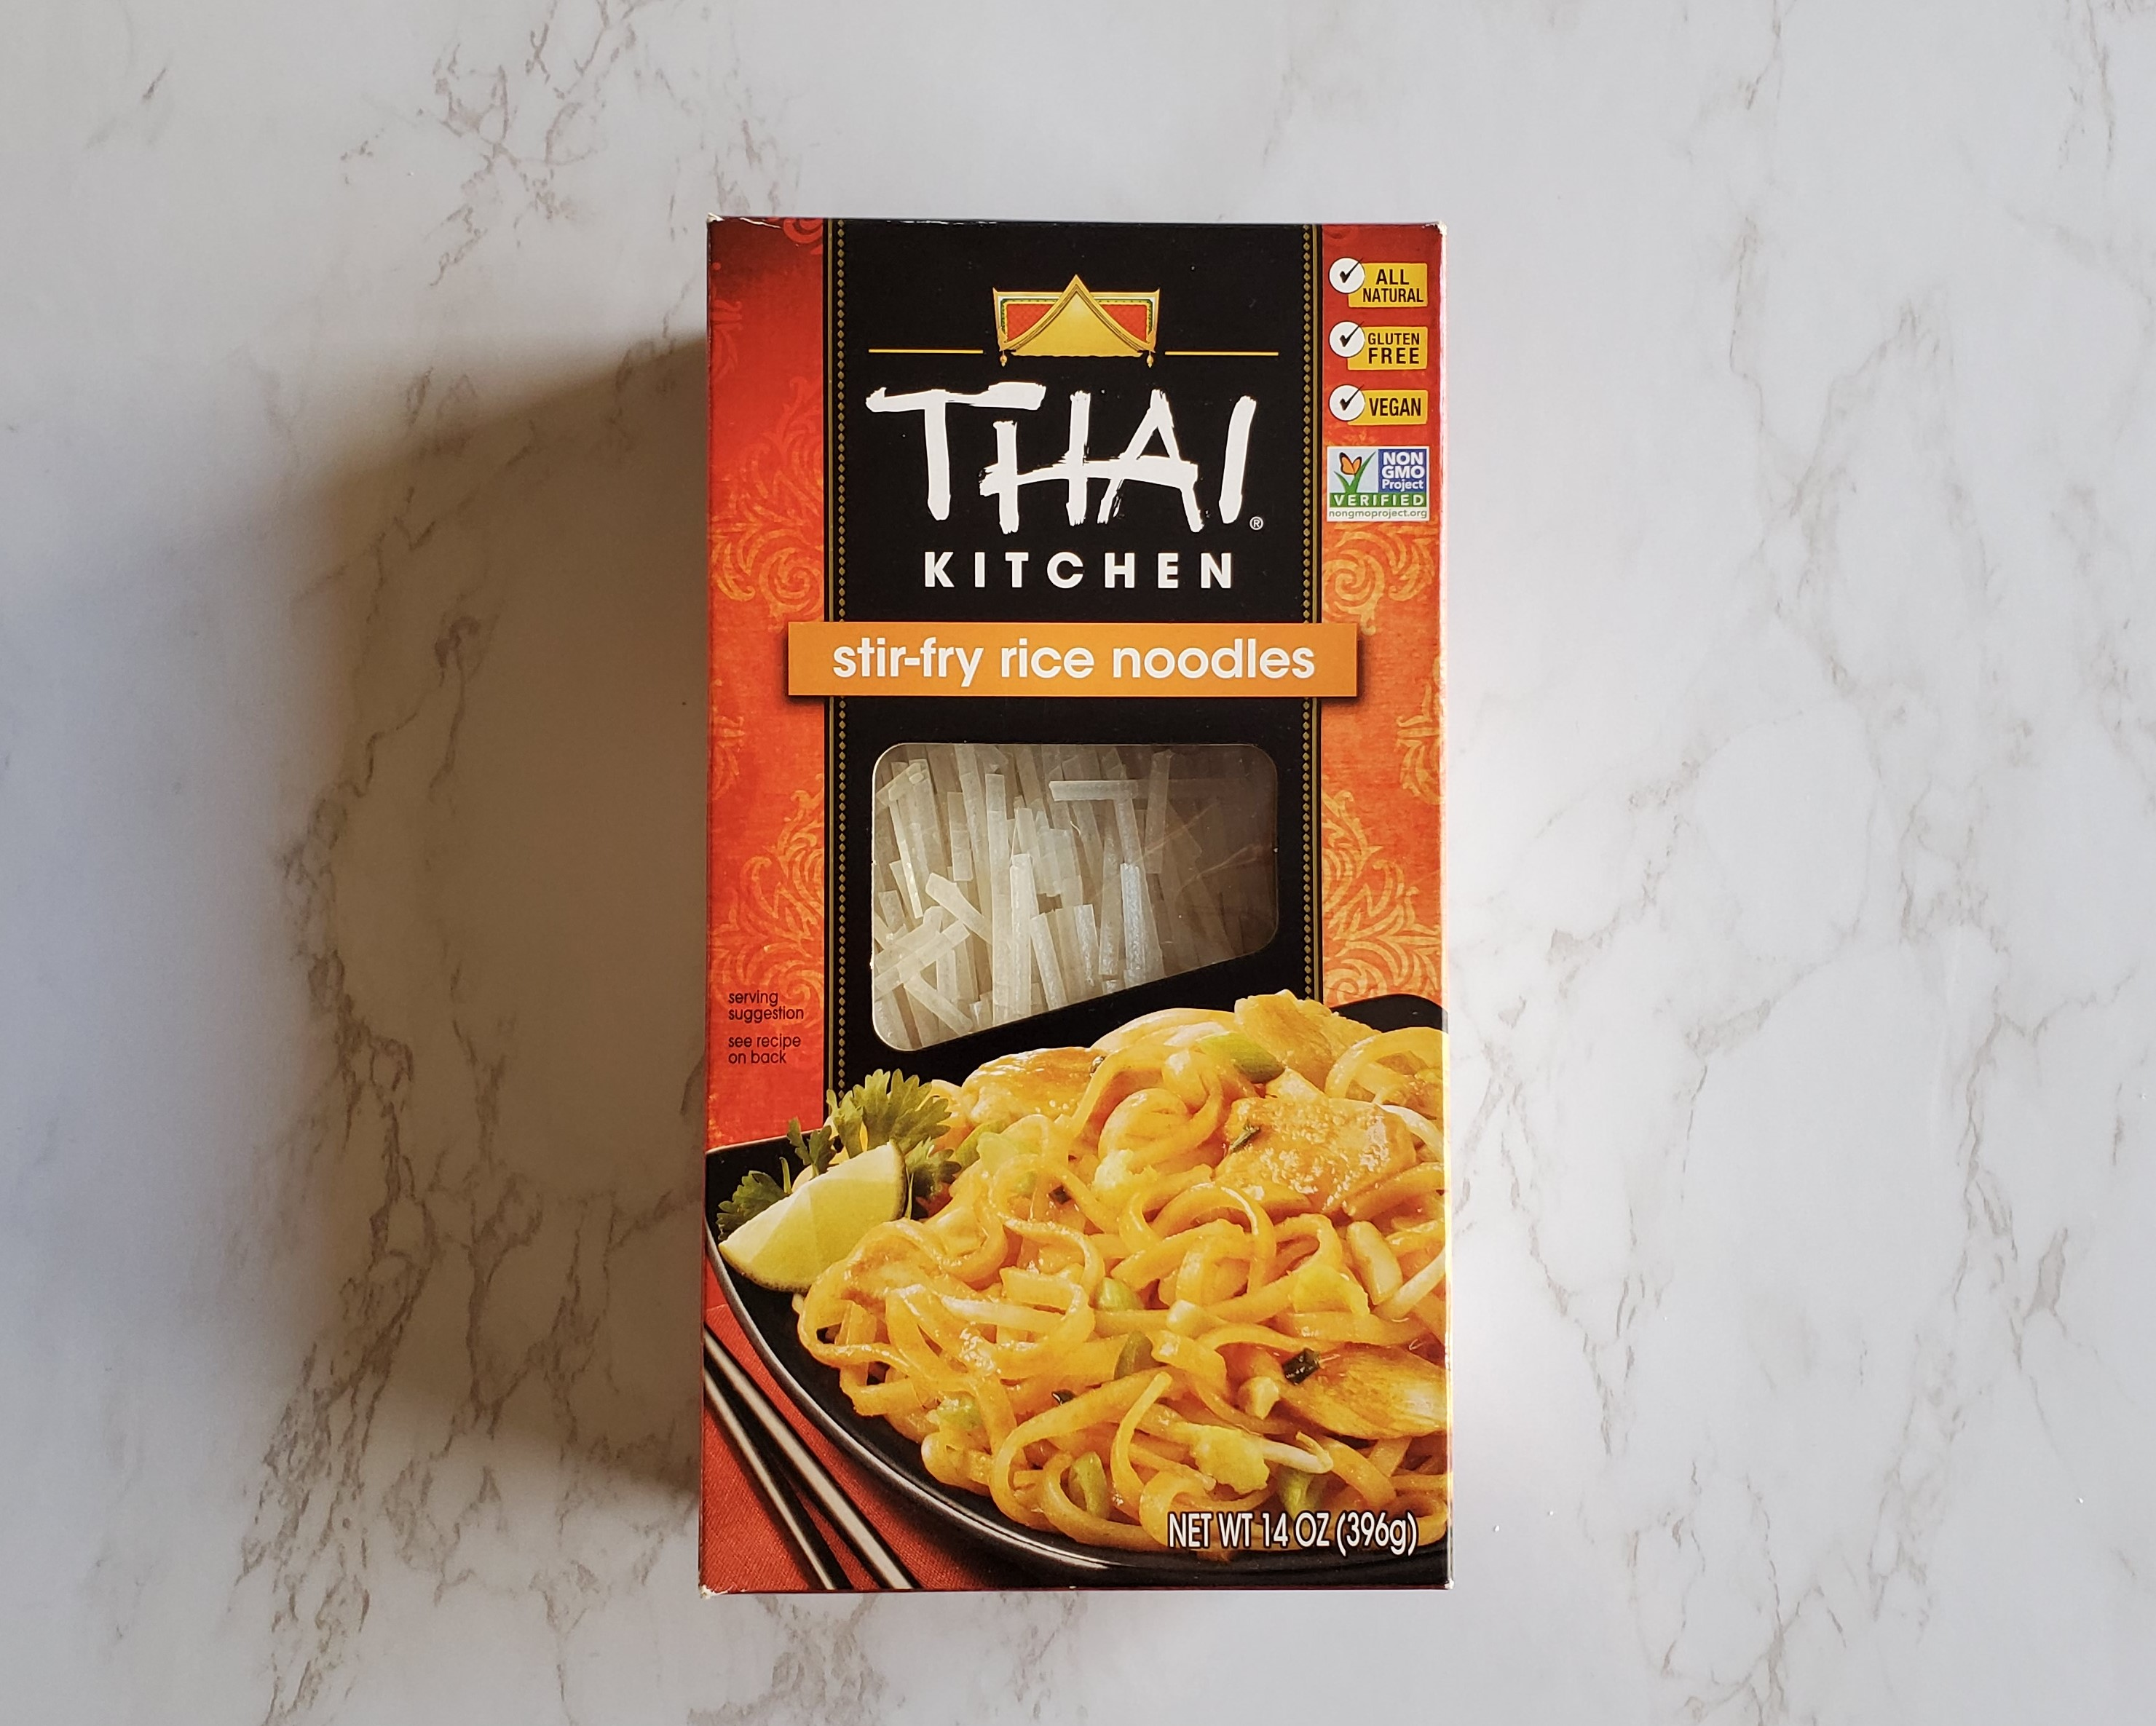 A box of Thai Kitchen stir-fry rice noodles on a white marble background.